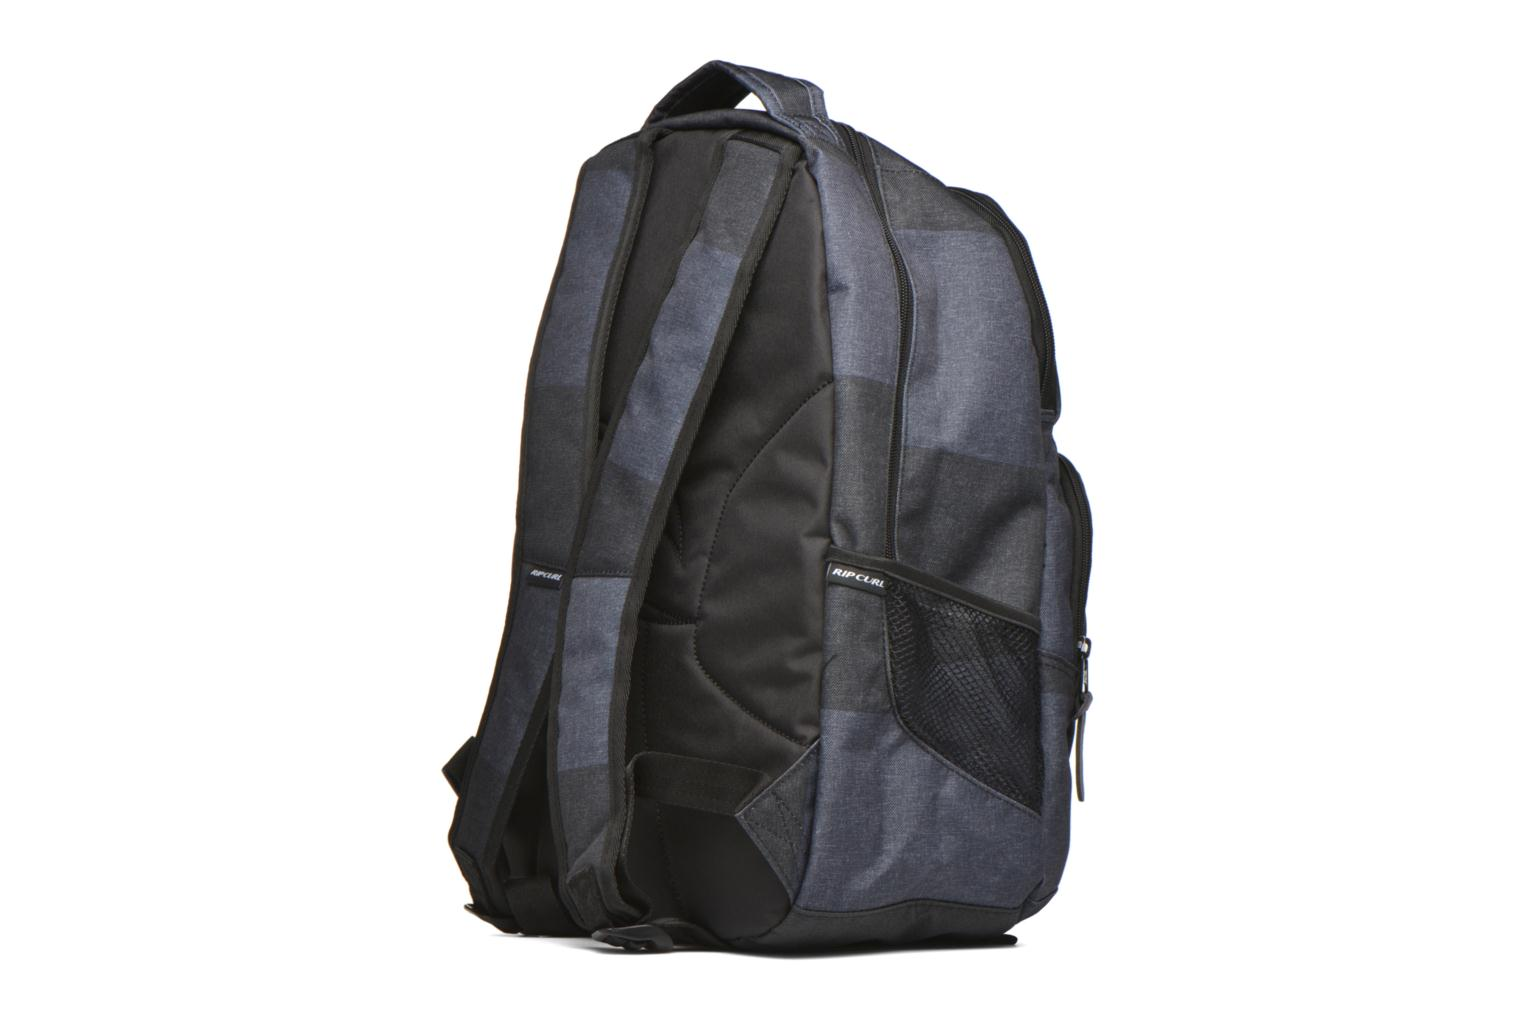 Mochilas Rip Curl Modern Retro Double up Sac à dos 2 compartiments Gris vista lateral derecha